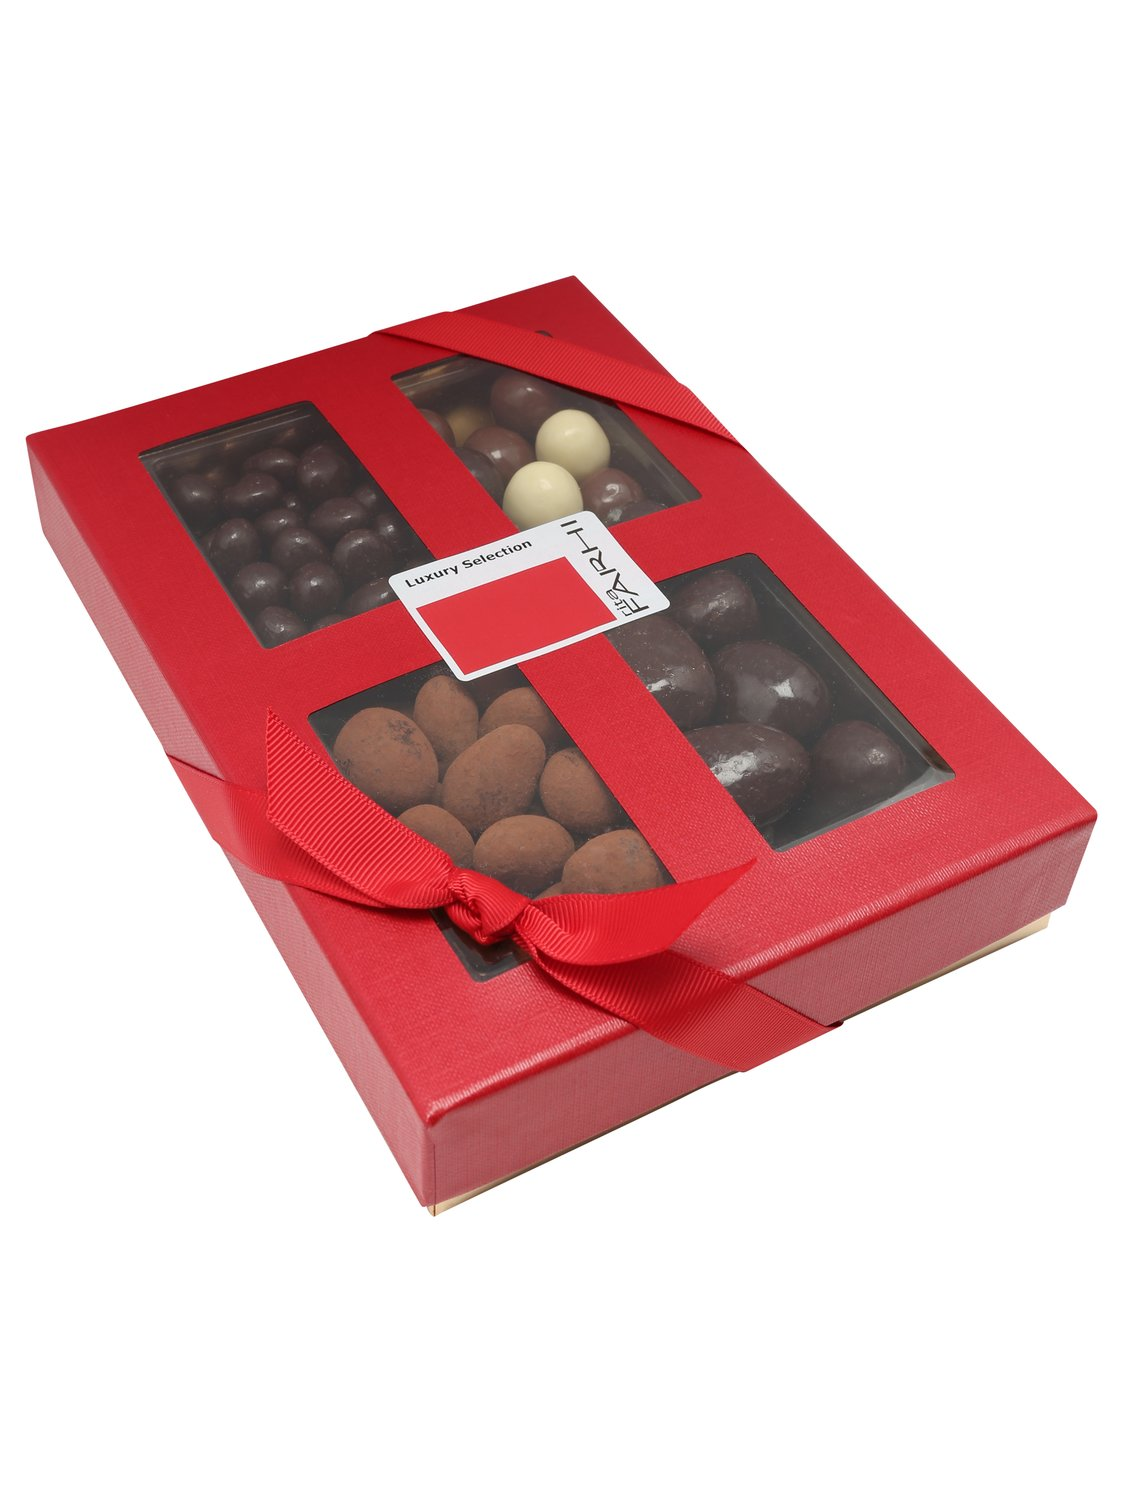 rita farhi nut selection box  - red